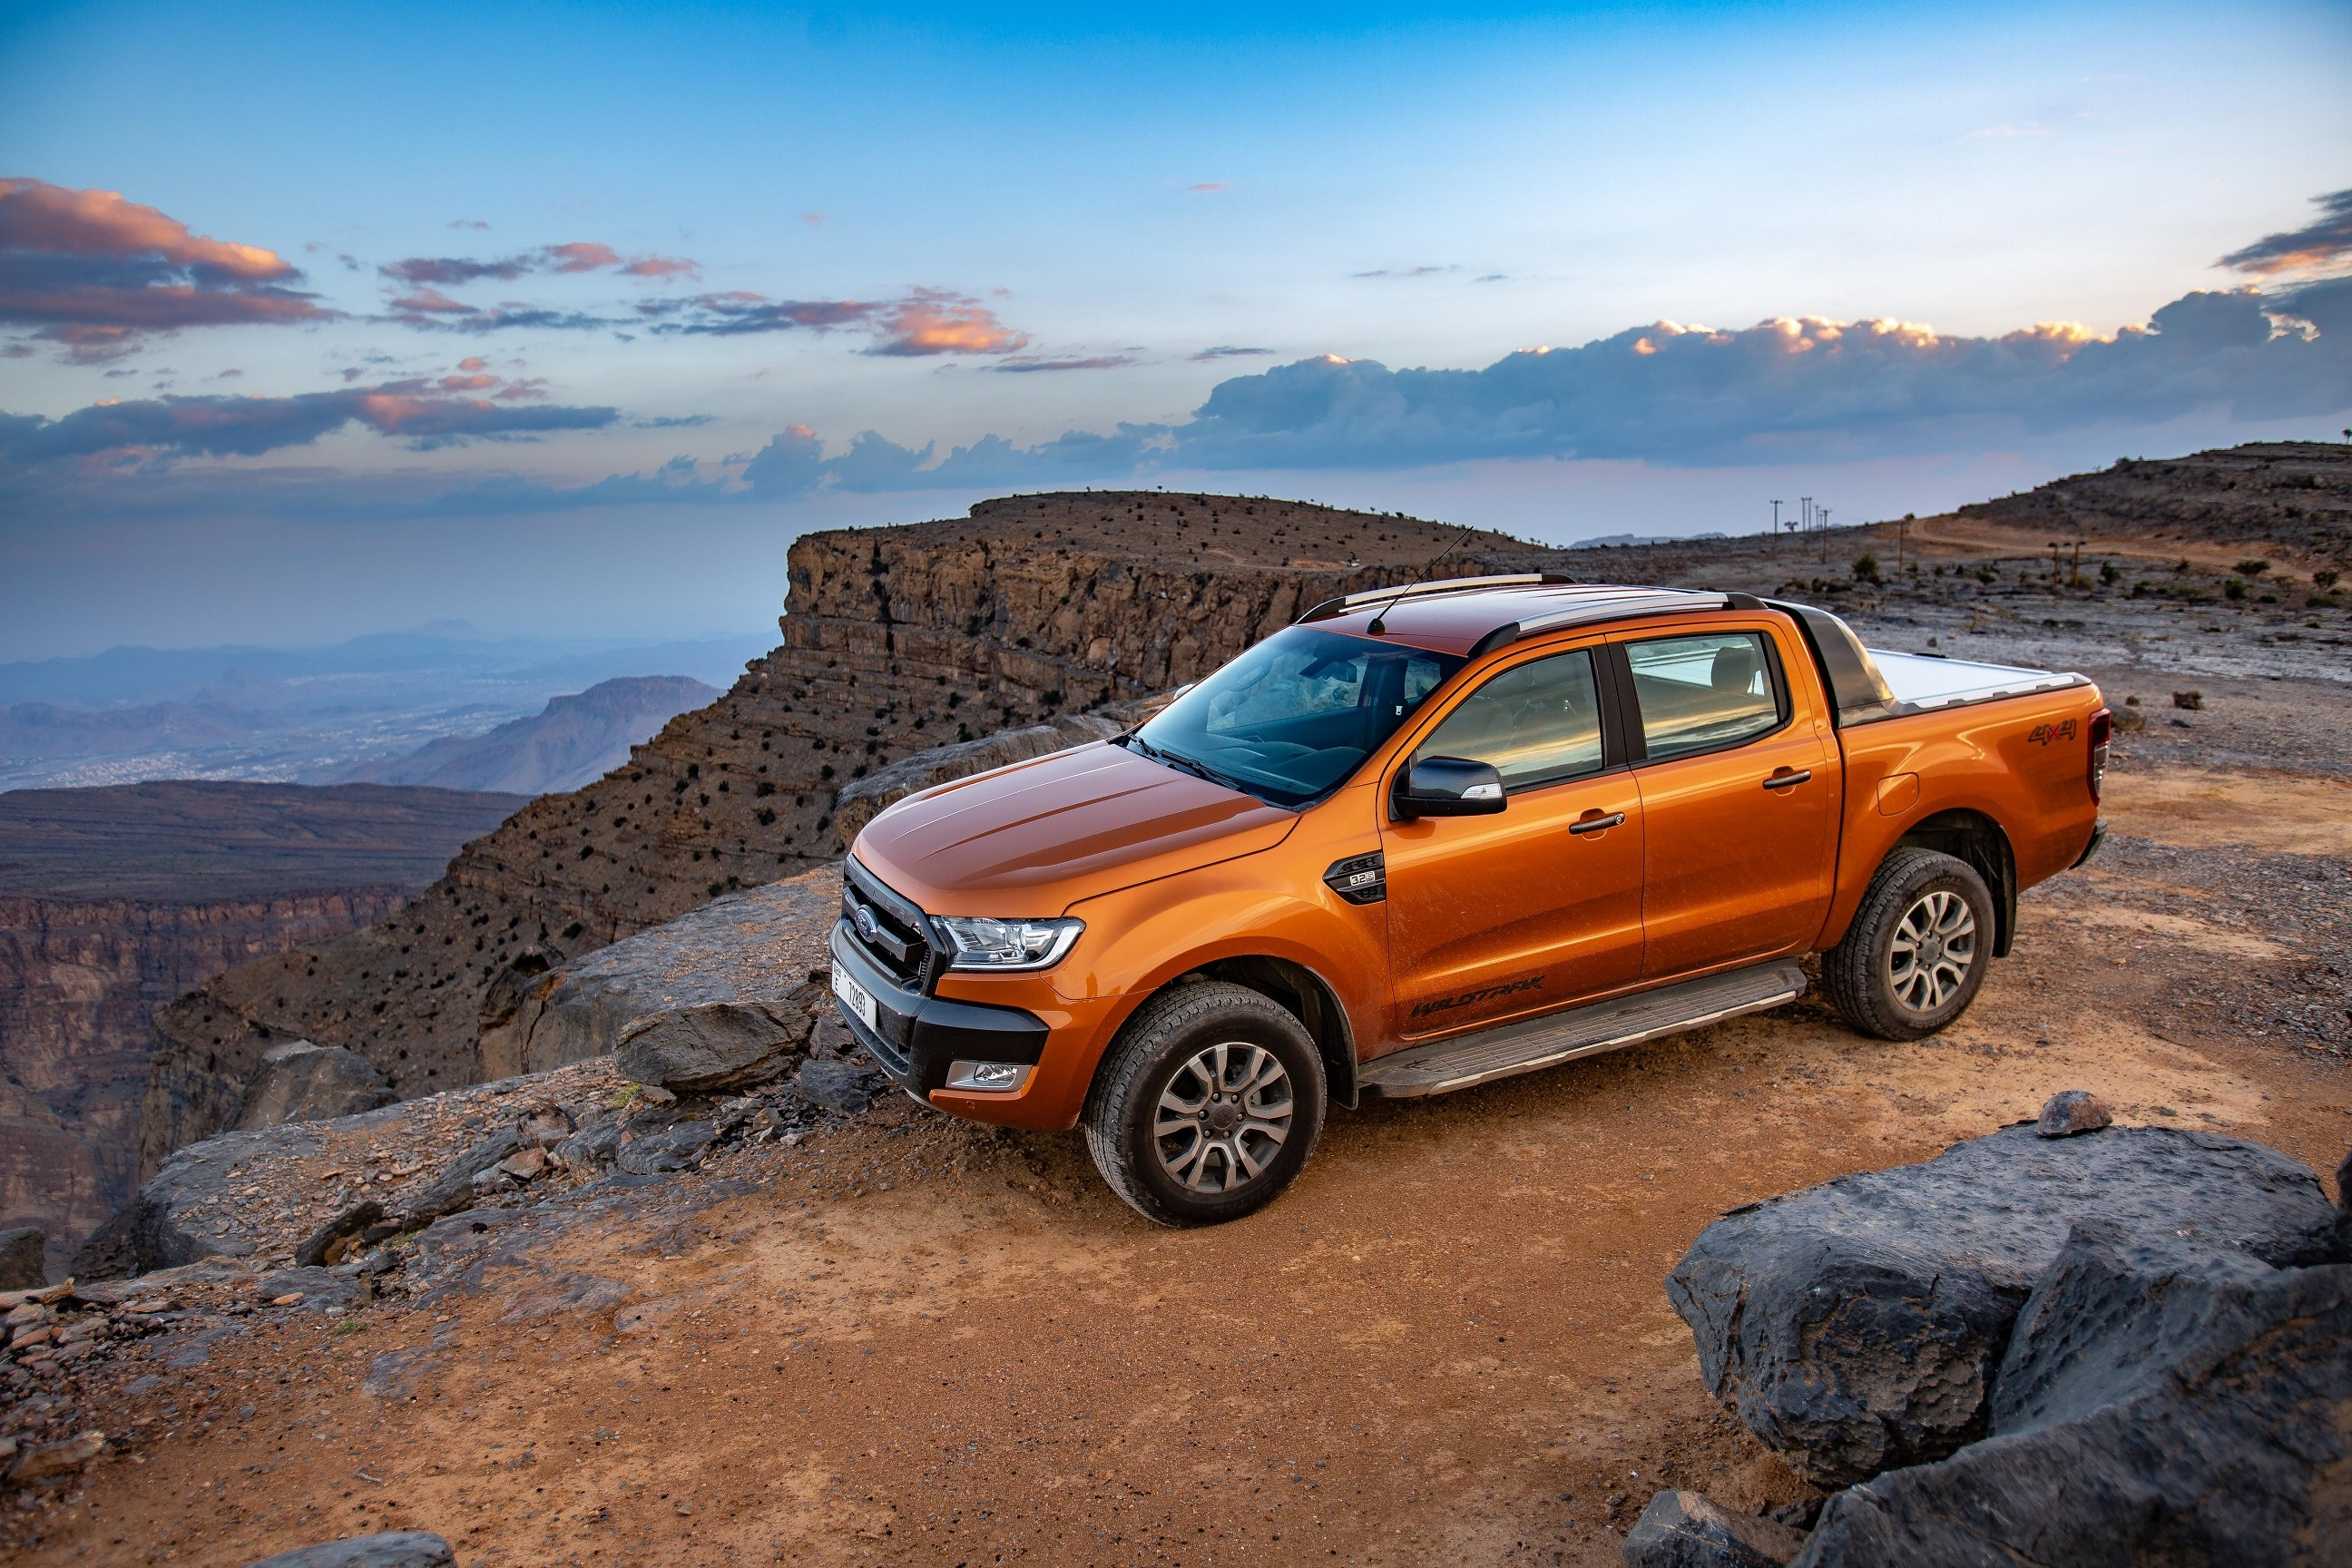 Built Ford Tough Ford Ranger Unlocks Access to the Great Outdoors With Electronic Shift-On-The-Fly 4x4, Locking Rear Differential and Impressive Off-Road Capability